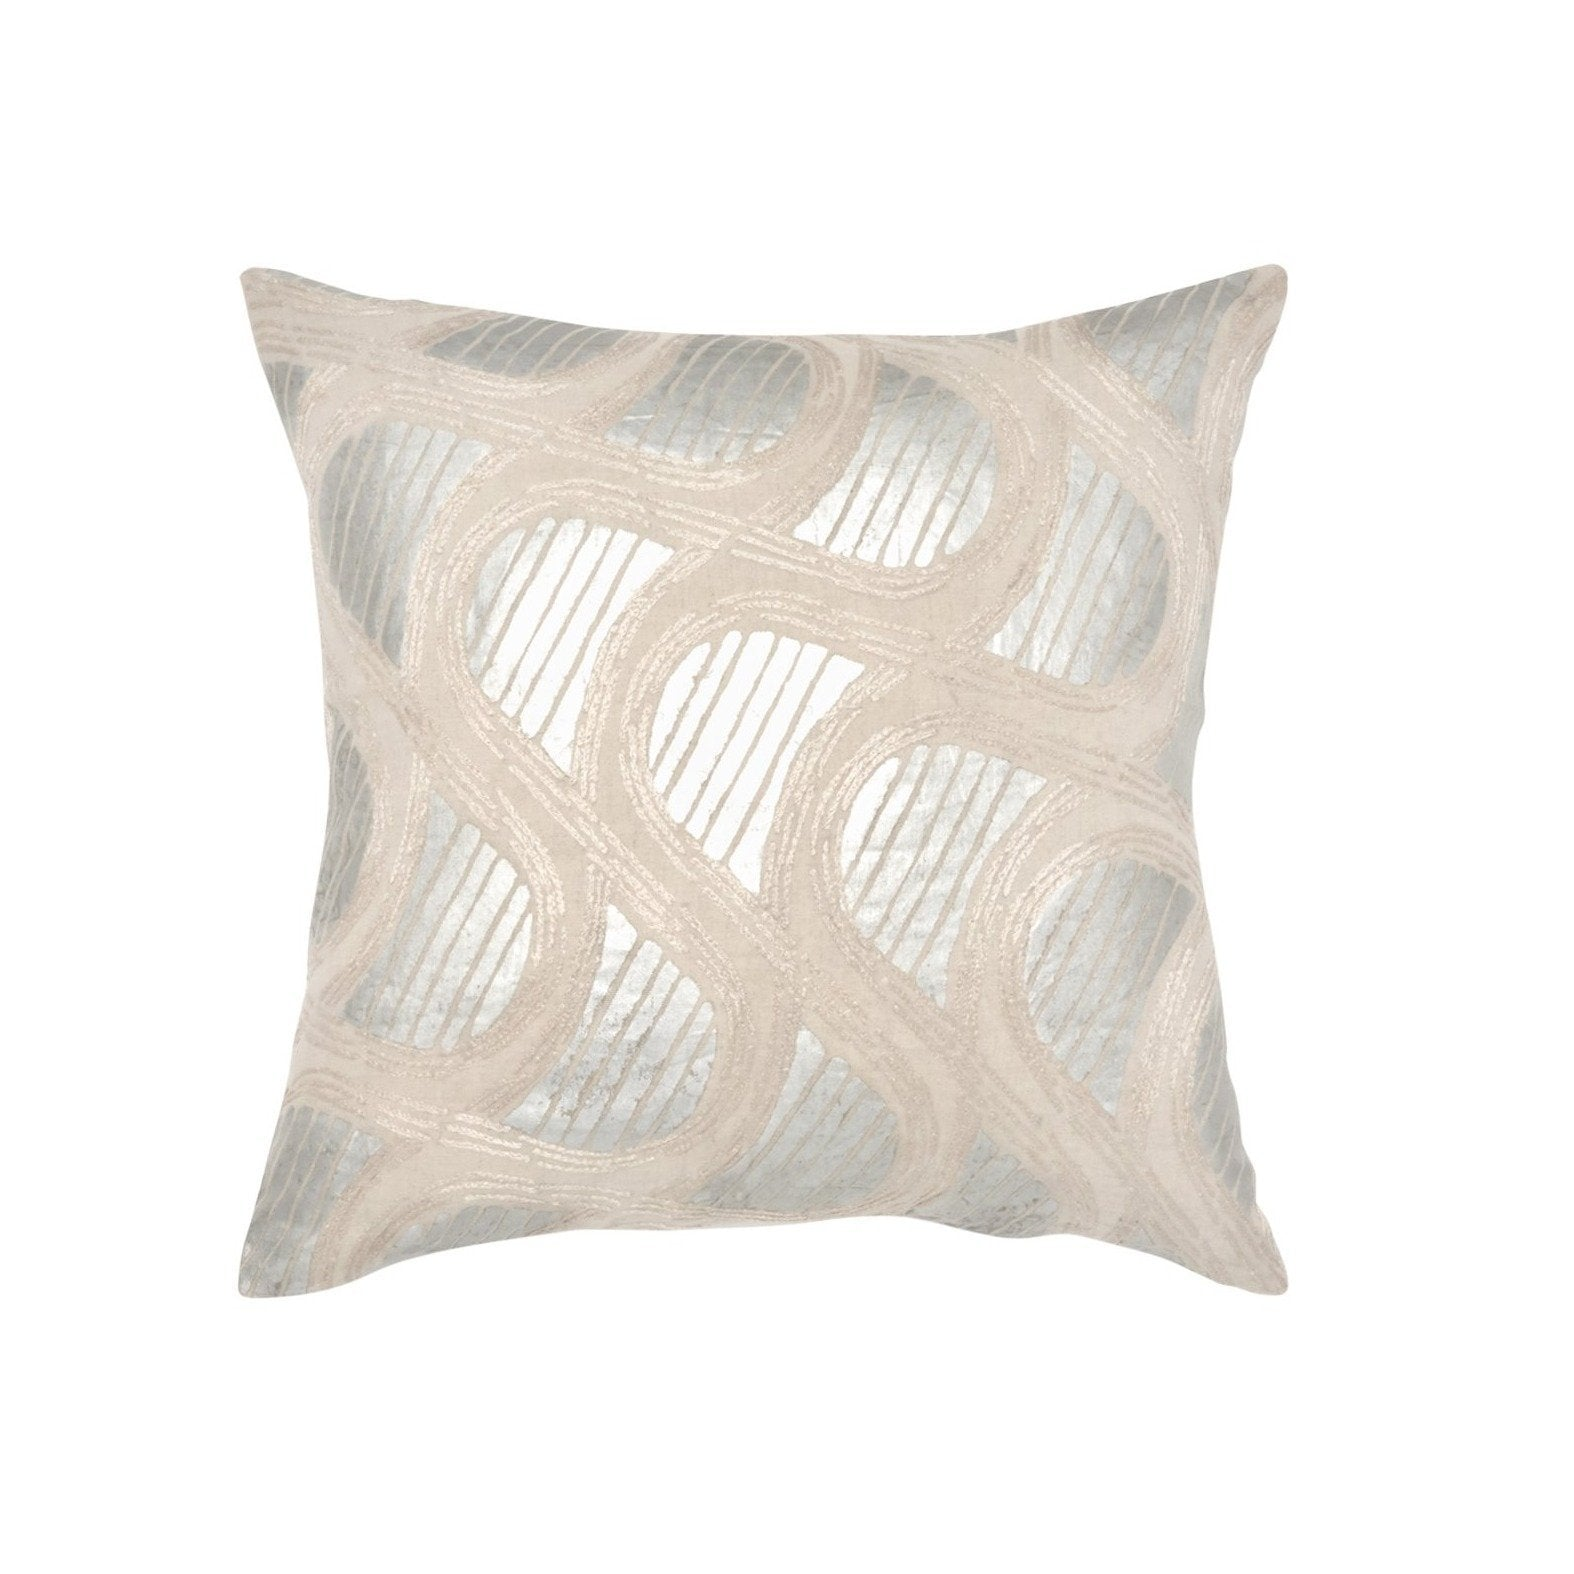 Fig Linens - Vipula Decorative Pillow by John Robshaw